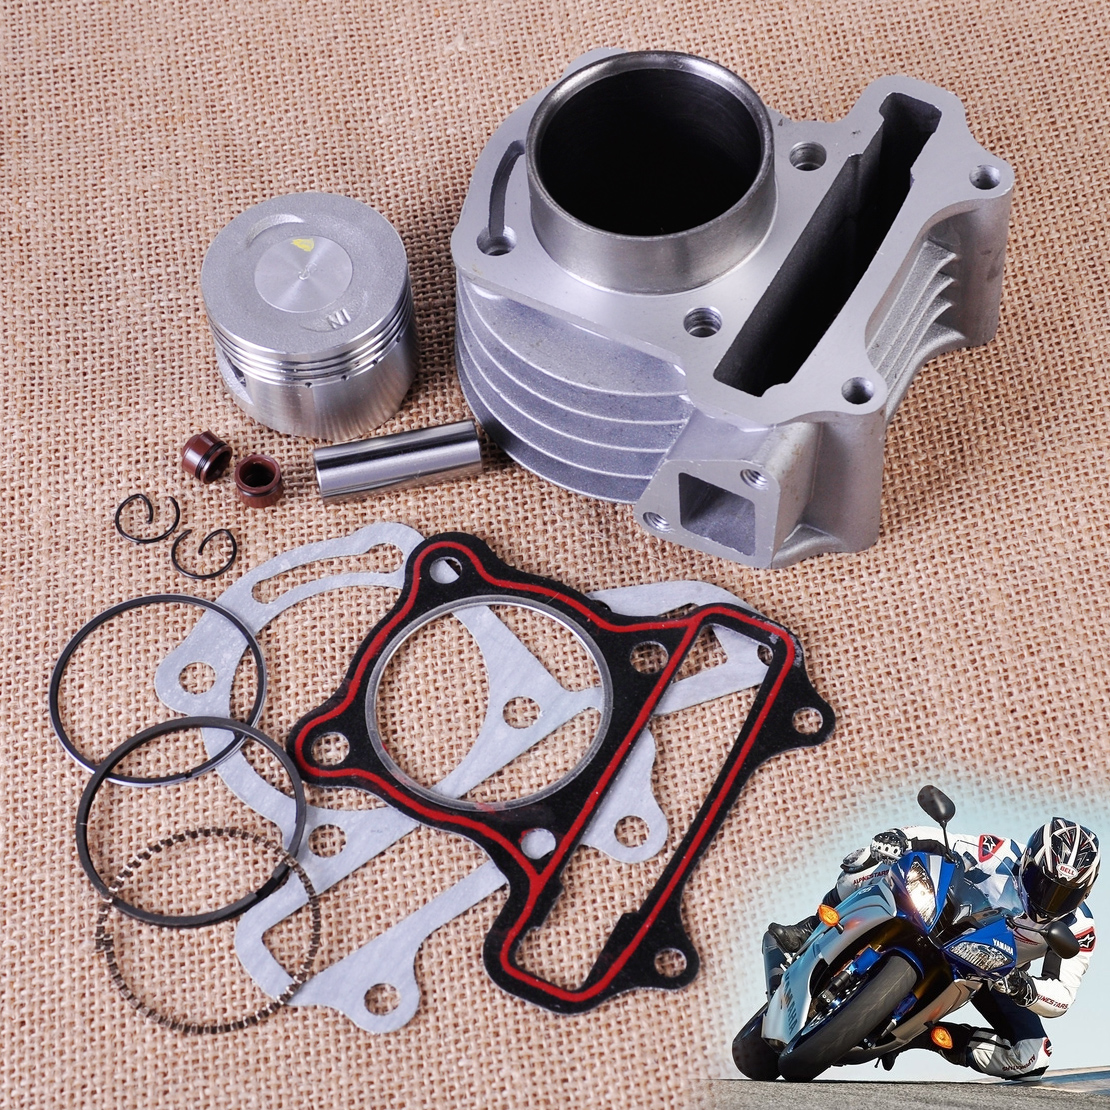 CITALL 47mm Big Bore Kit Cylinder Piston Rings for GY6 50cc 60cc 80cc 4-Stroke Scooter Moped ATV with 139QMB or 139QMA engine 47mm 10mm 70cc big bore cylinder barrel kit head for aprilia gulliver rally scarabeo sonic sr 50cc